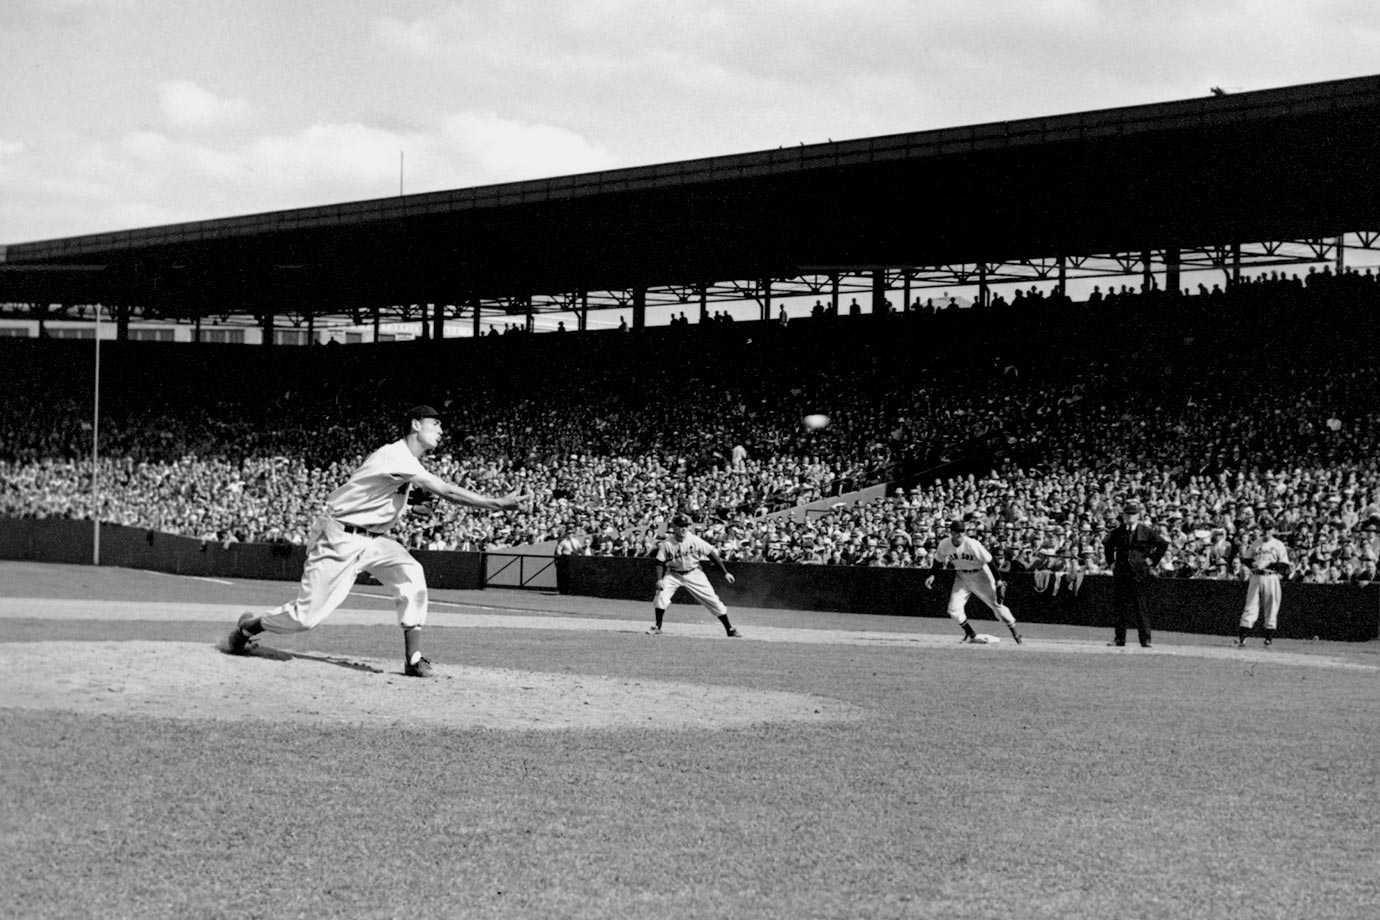 "With the Red Sox down 11-1 to the Tigers, Ted Williams took the mound for the final two innings, allowing one run on three hits in a 12-1 loss at Fenway Park. ""The Greatest Hitter Who Ever Lived"" proved to be a serviceable pitcher."